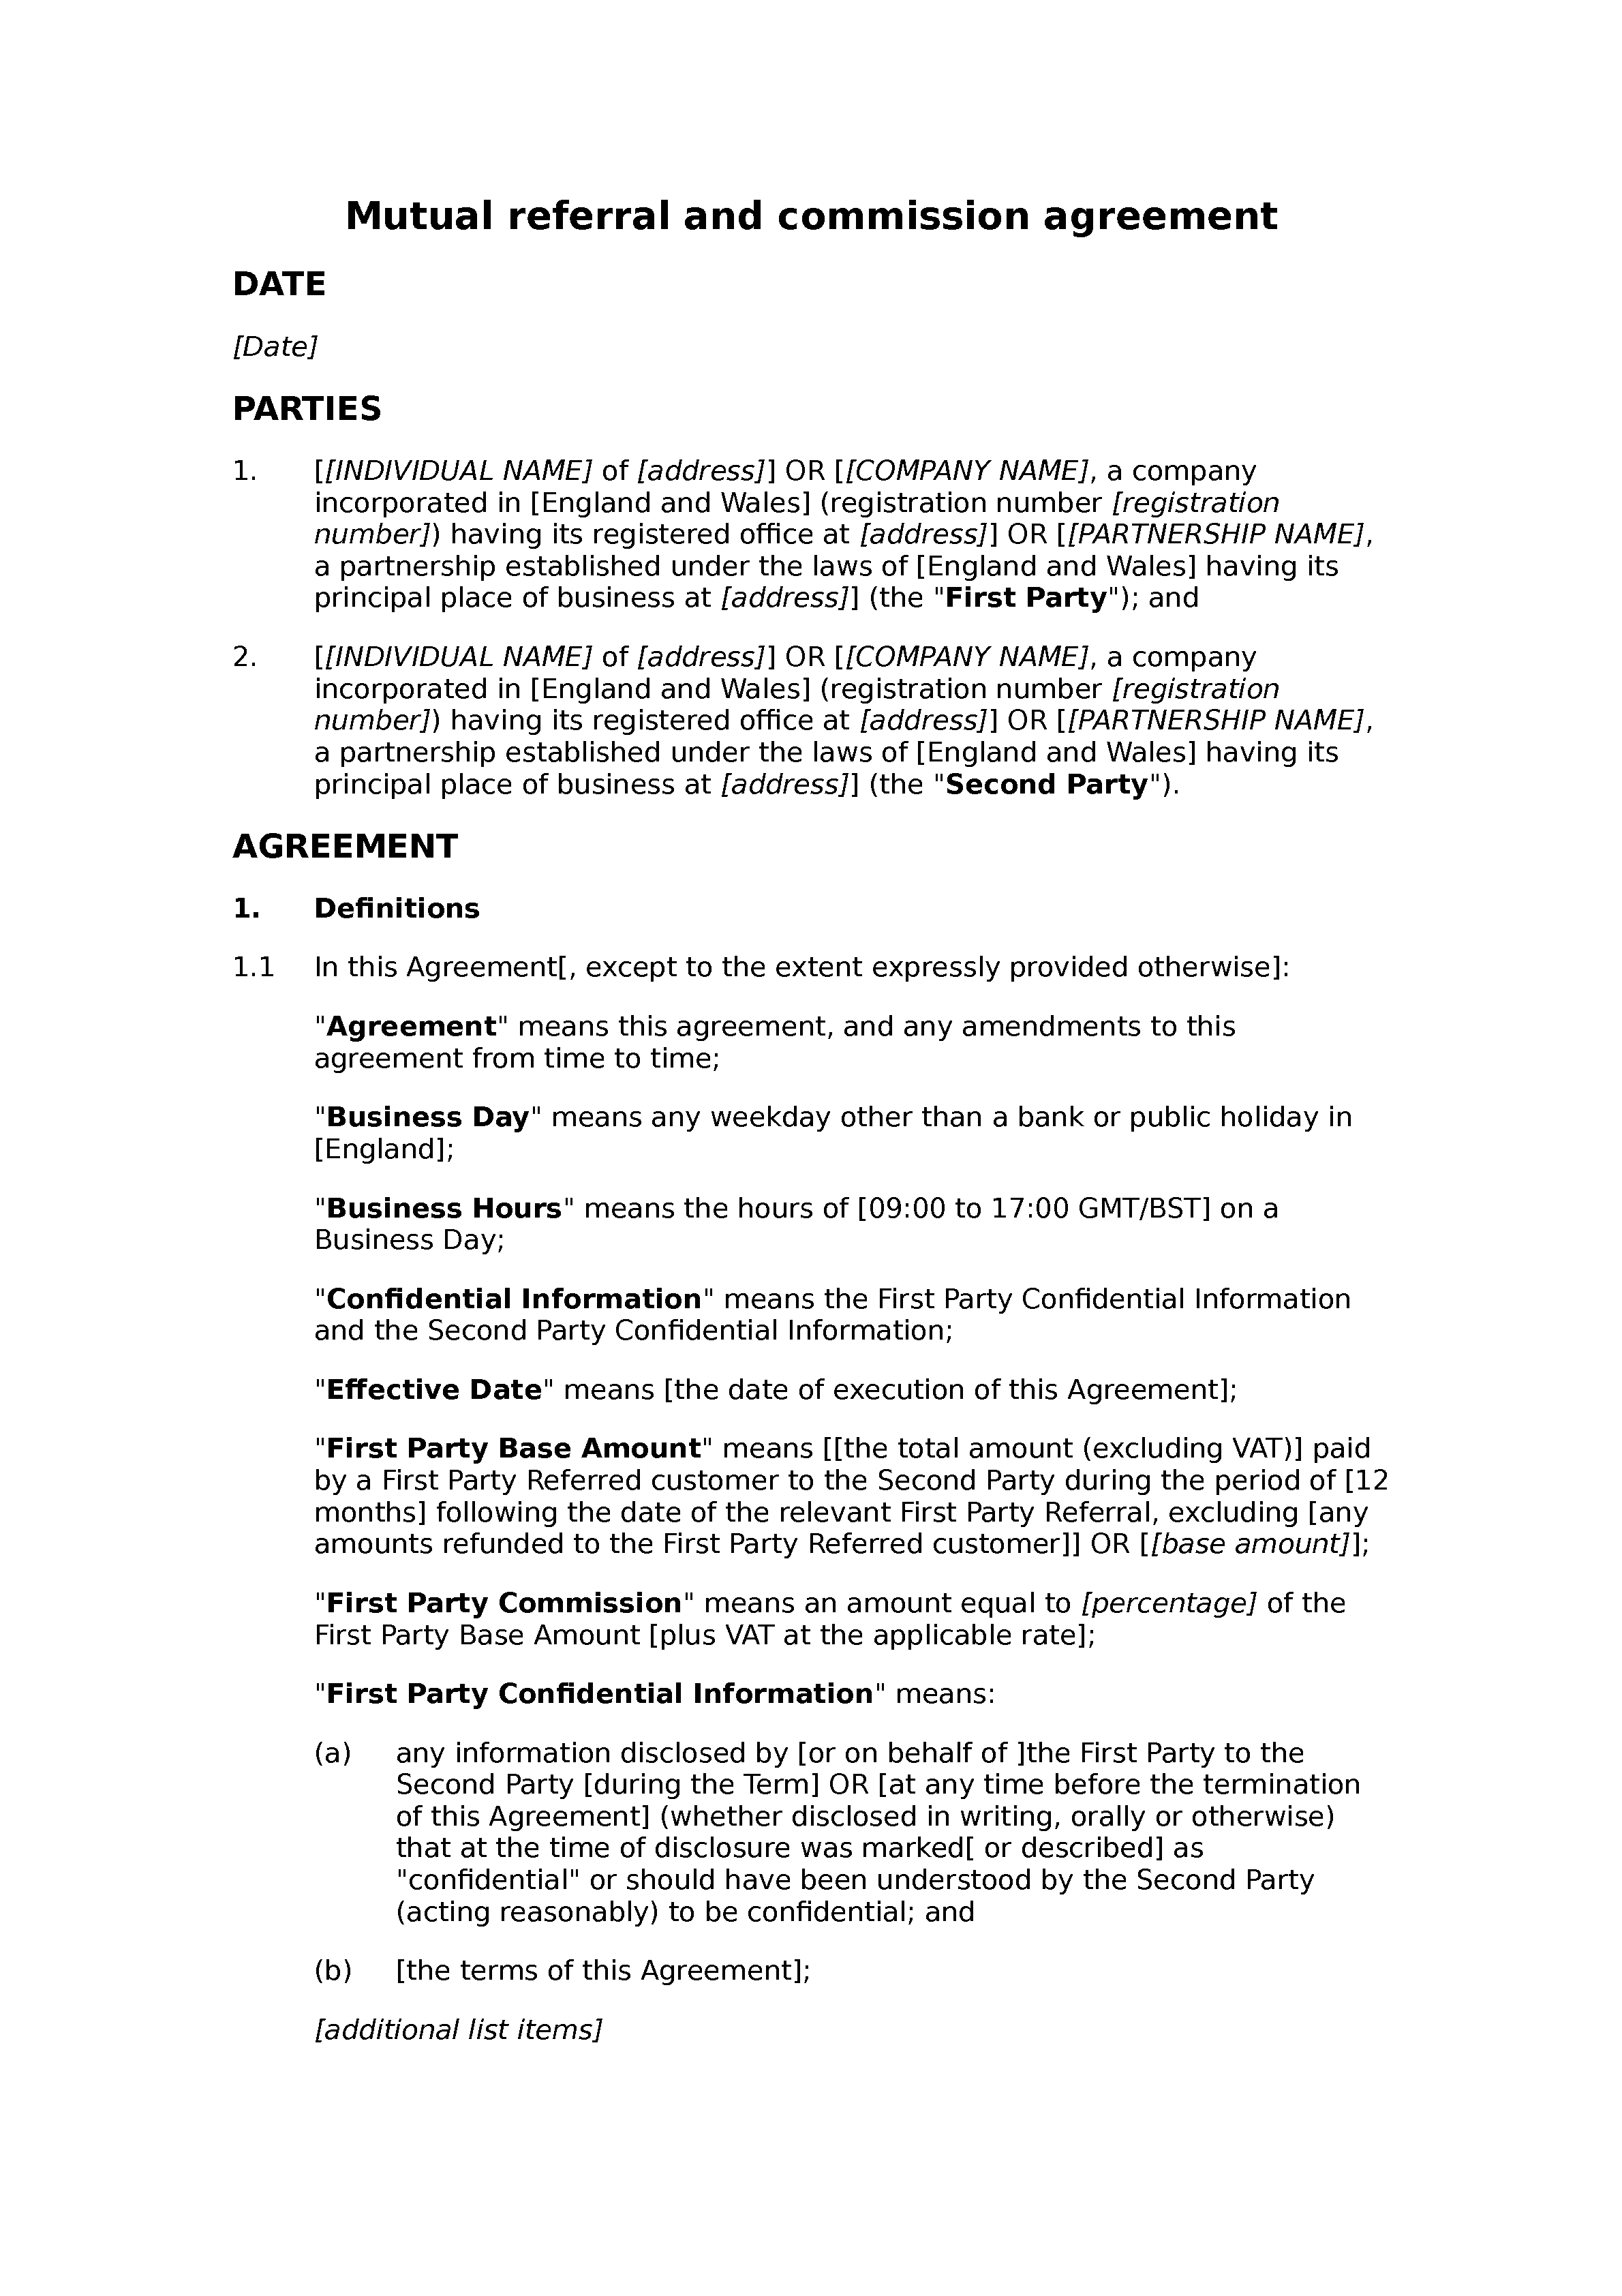 Mutual Referral And Commission Agreement Docular